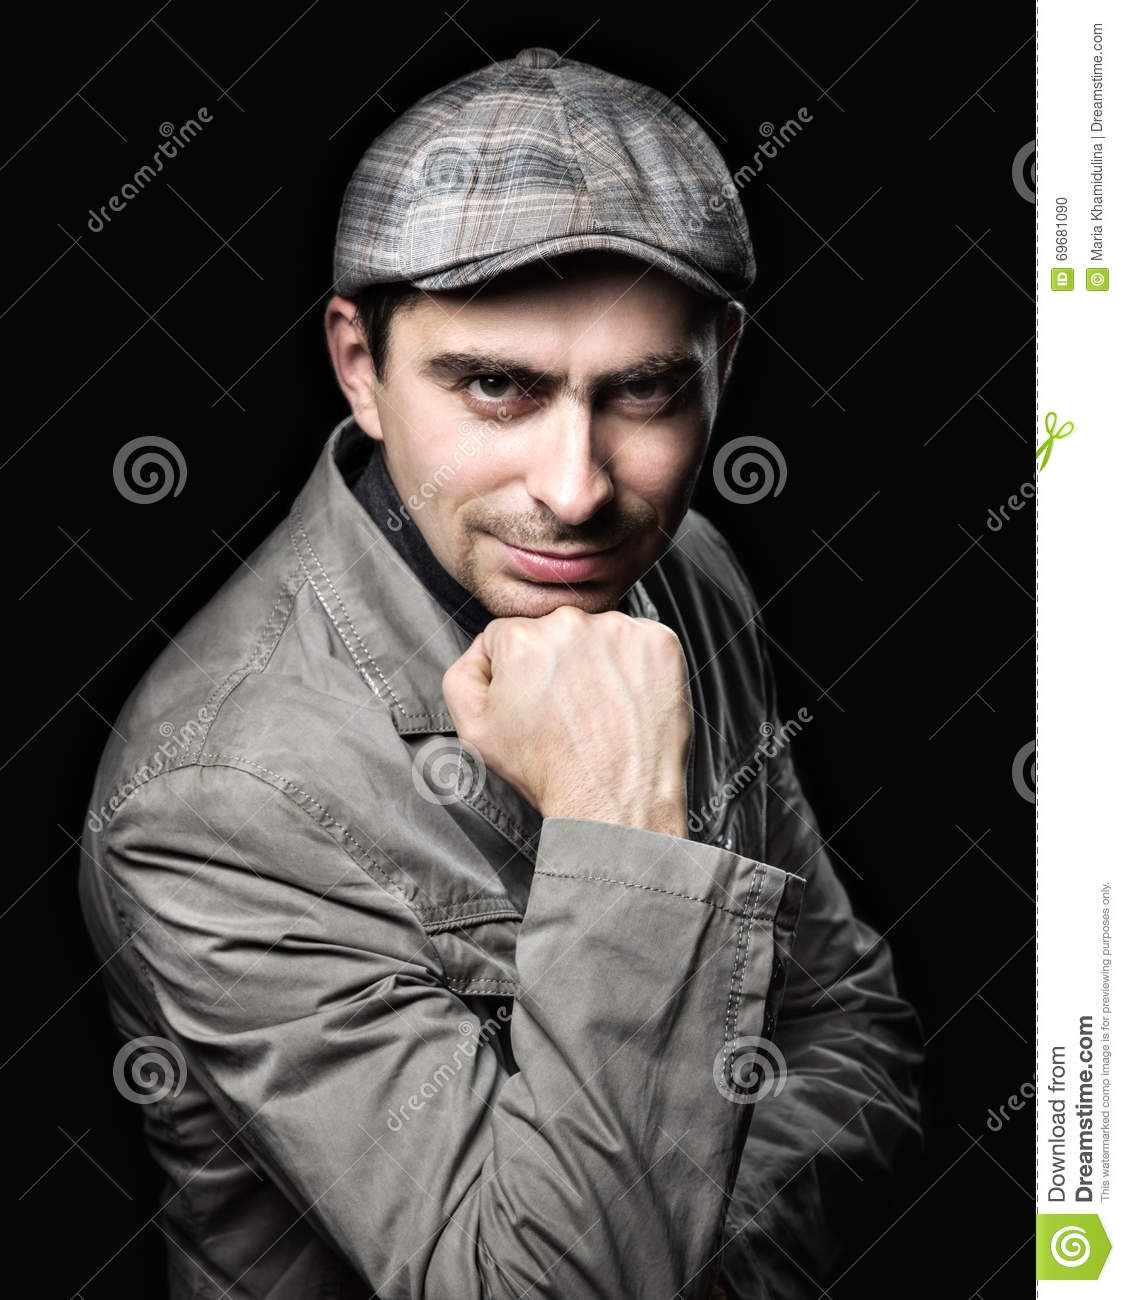 Stylish man in the pose of relying on his fist